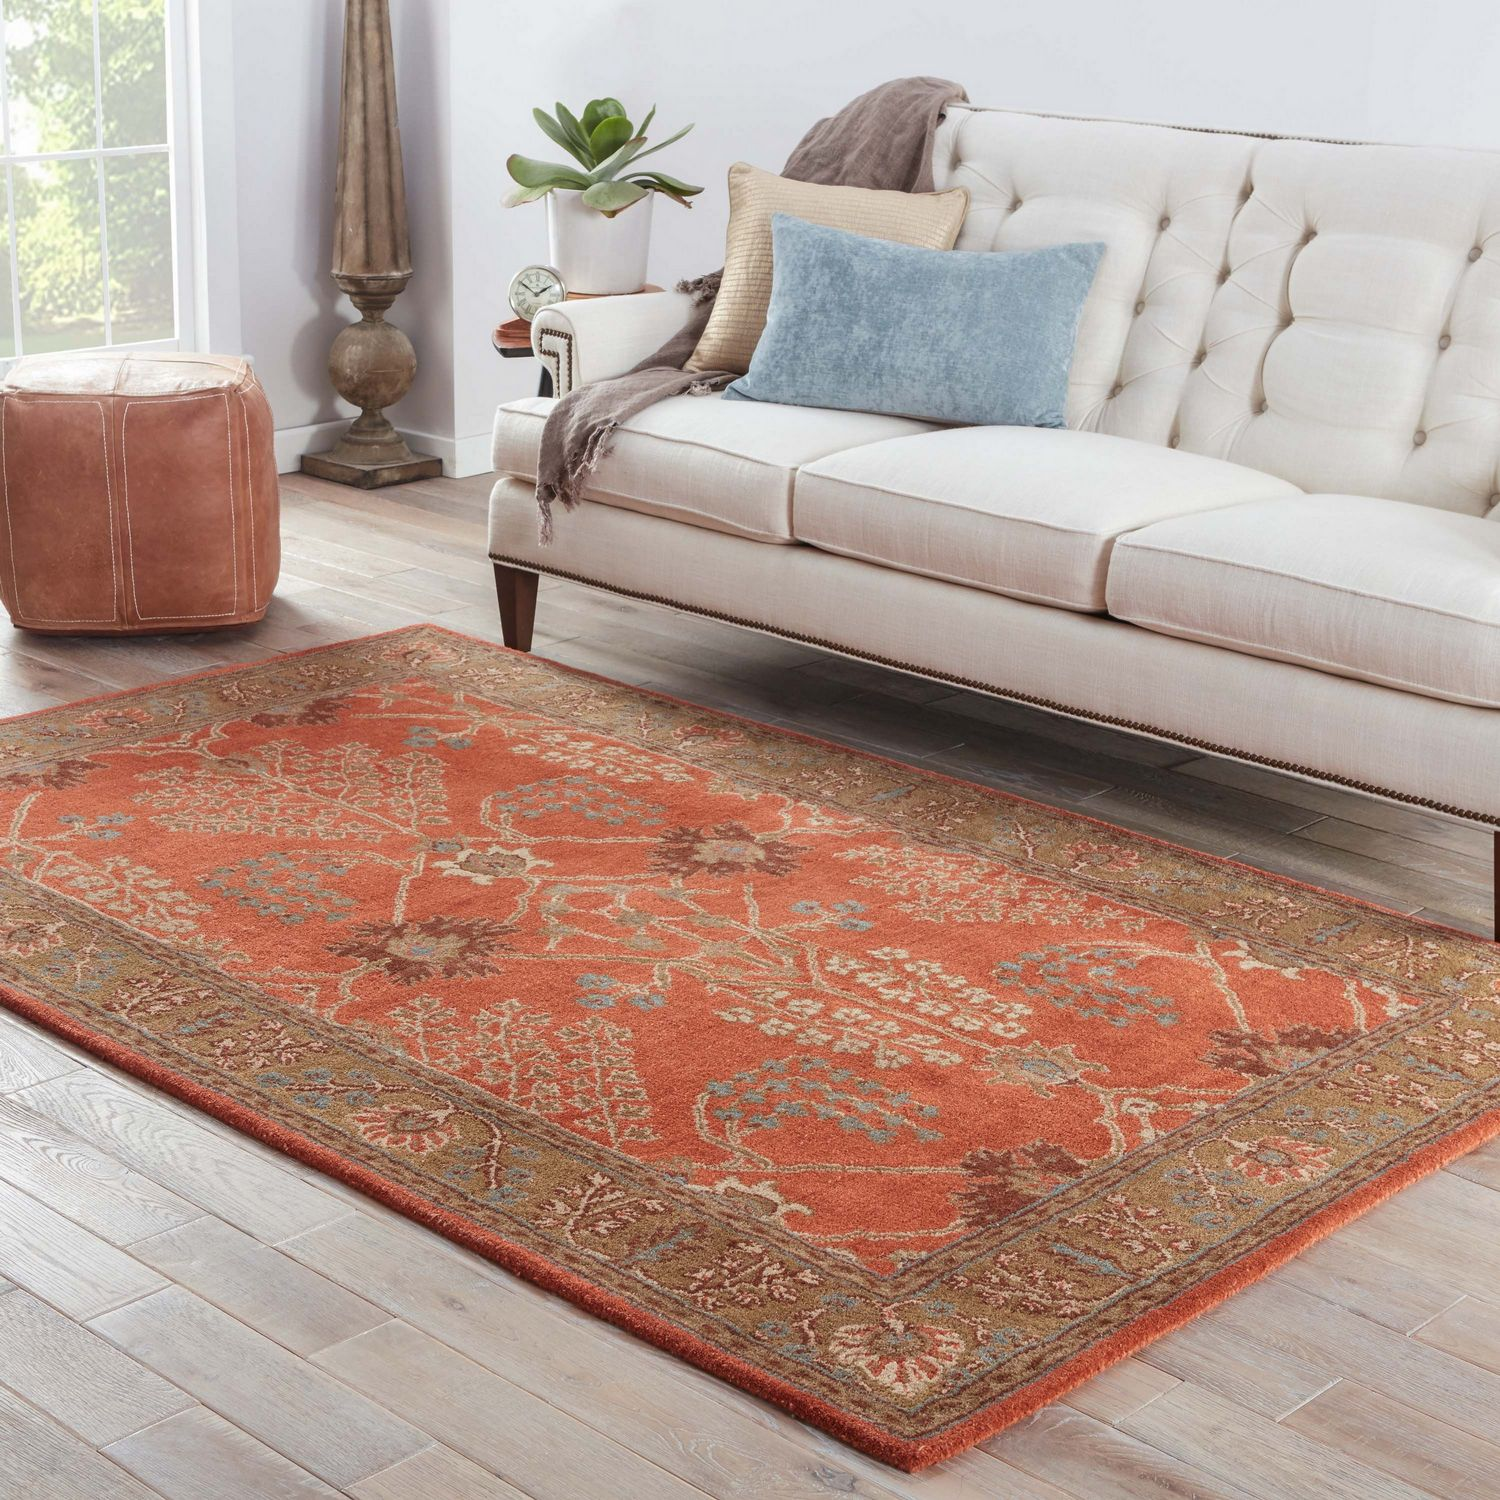 Jaipur Living Rugs Pm51 Poeme